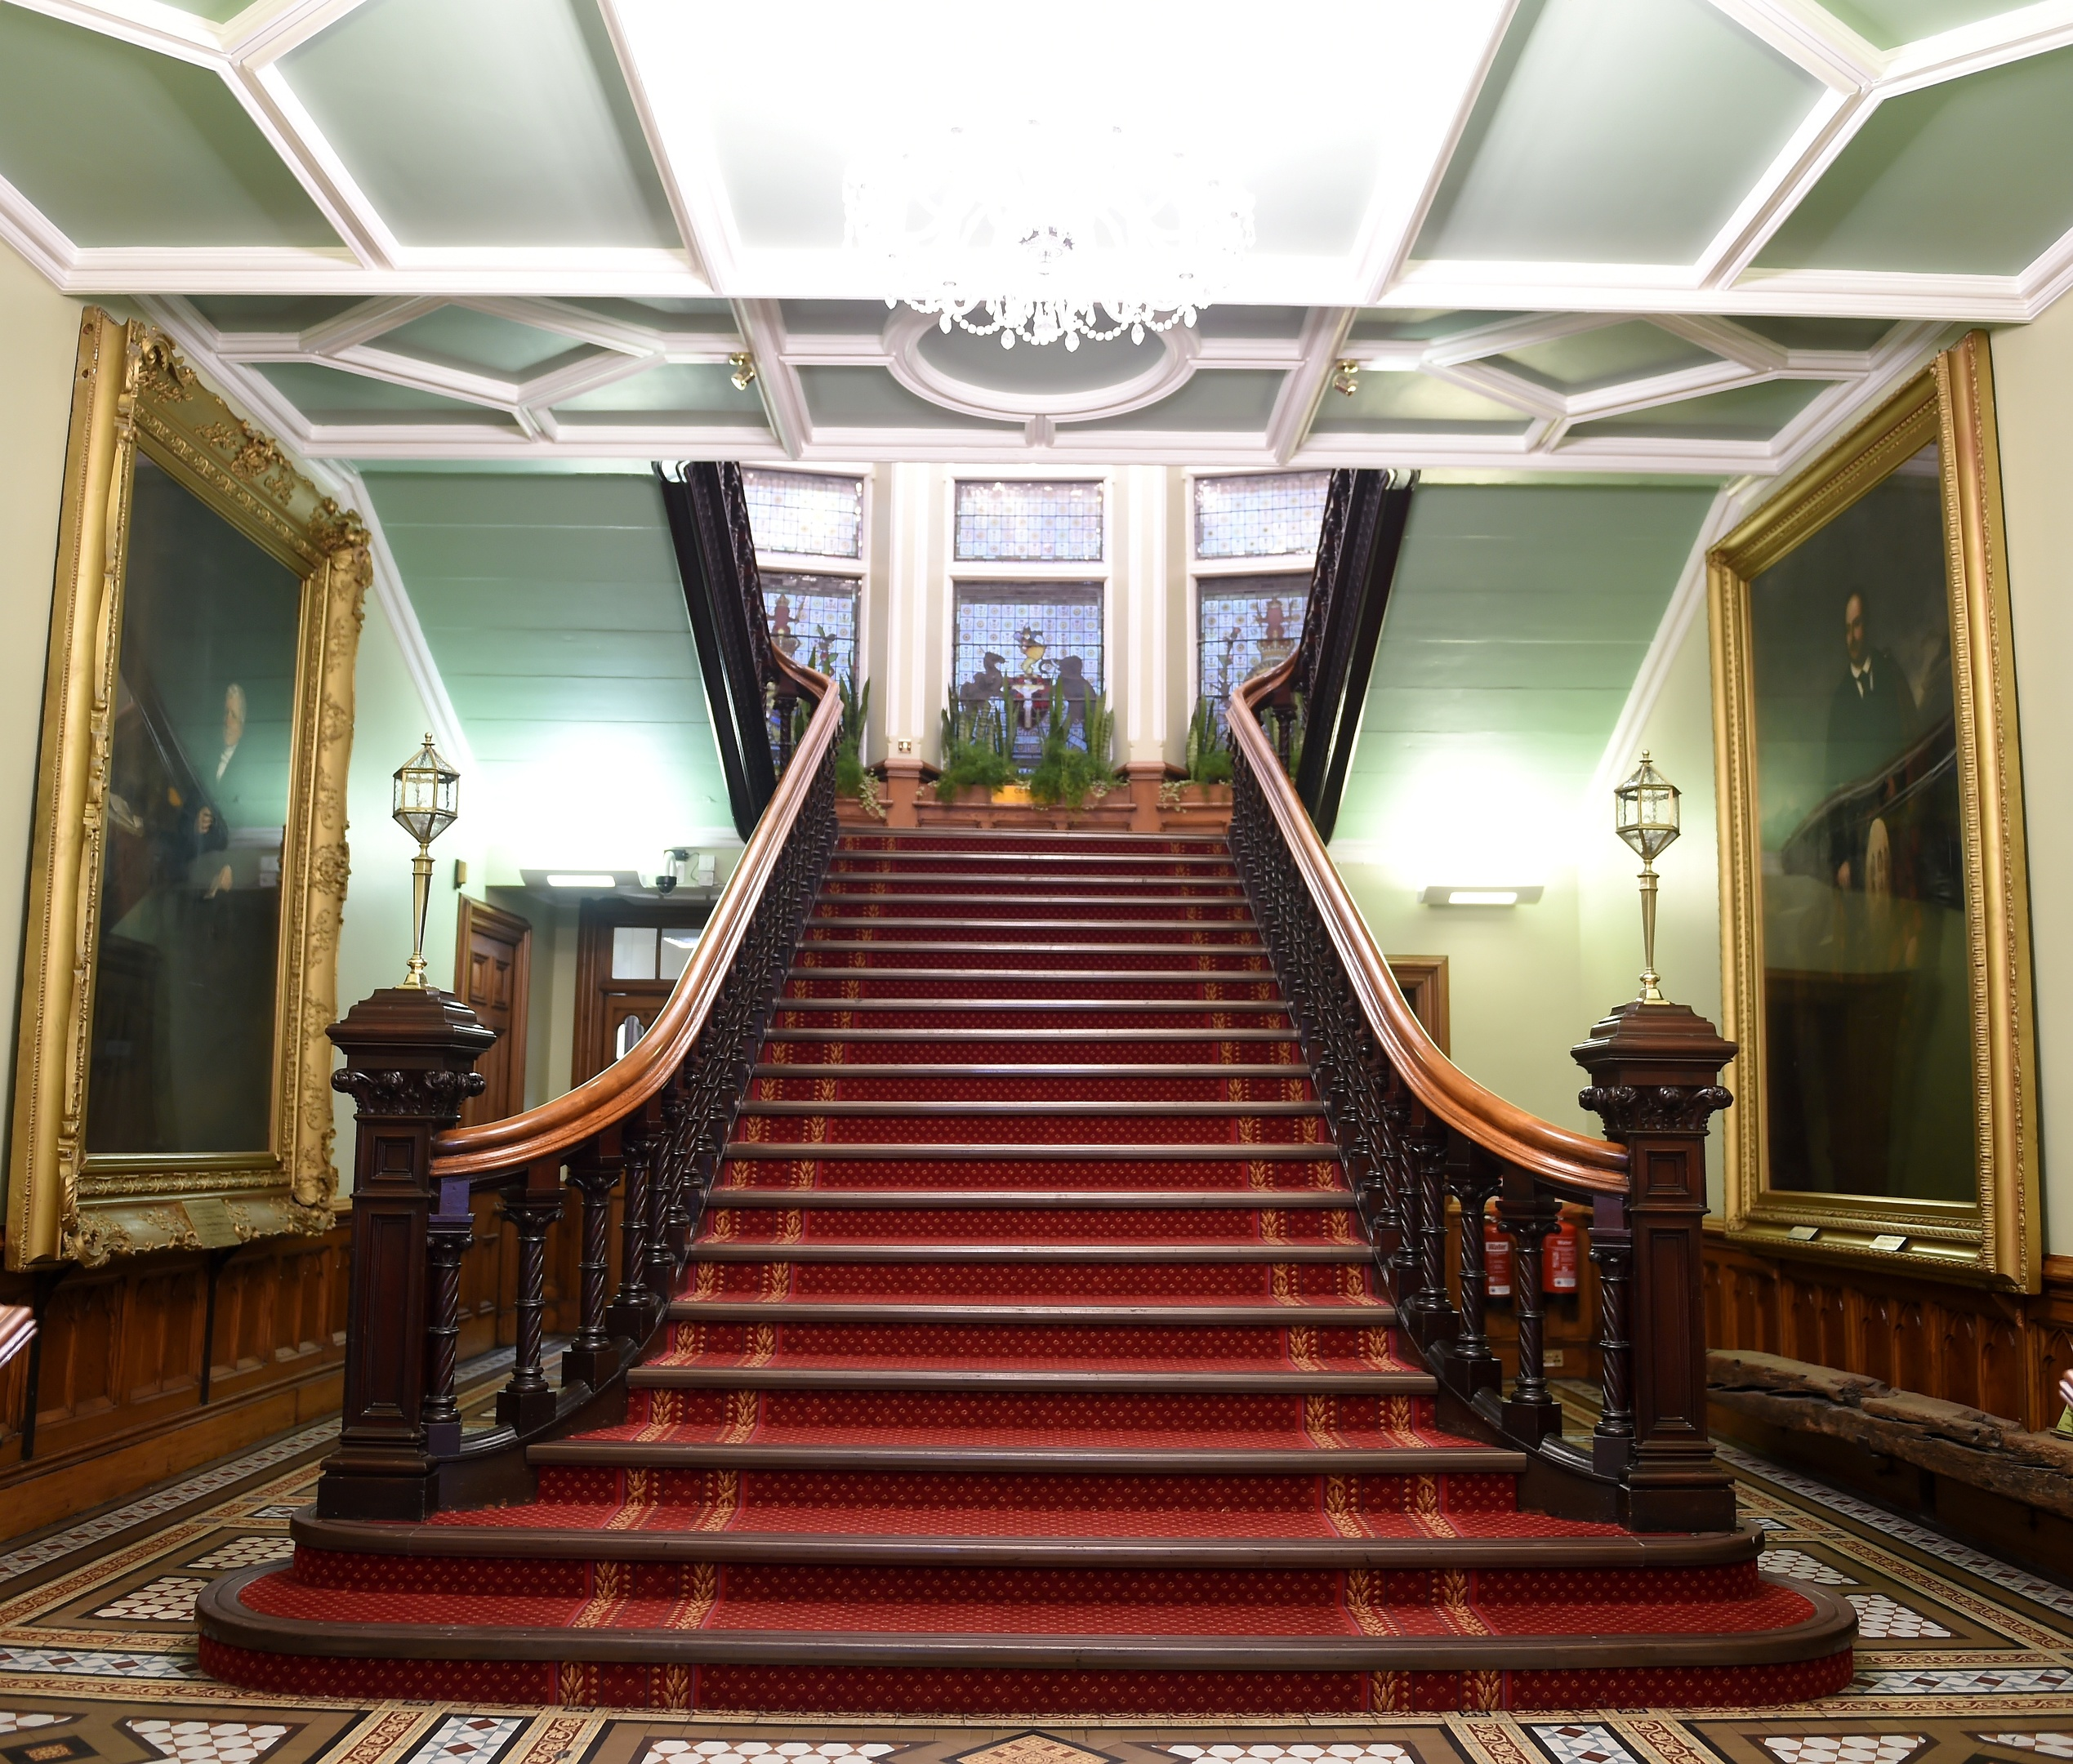 Inside Inverness Town House. Picture by Sandy McCook.